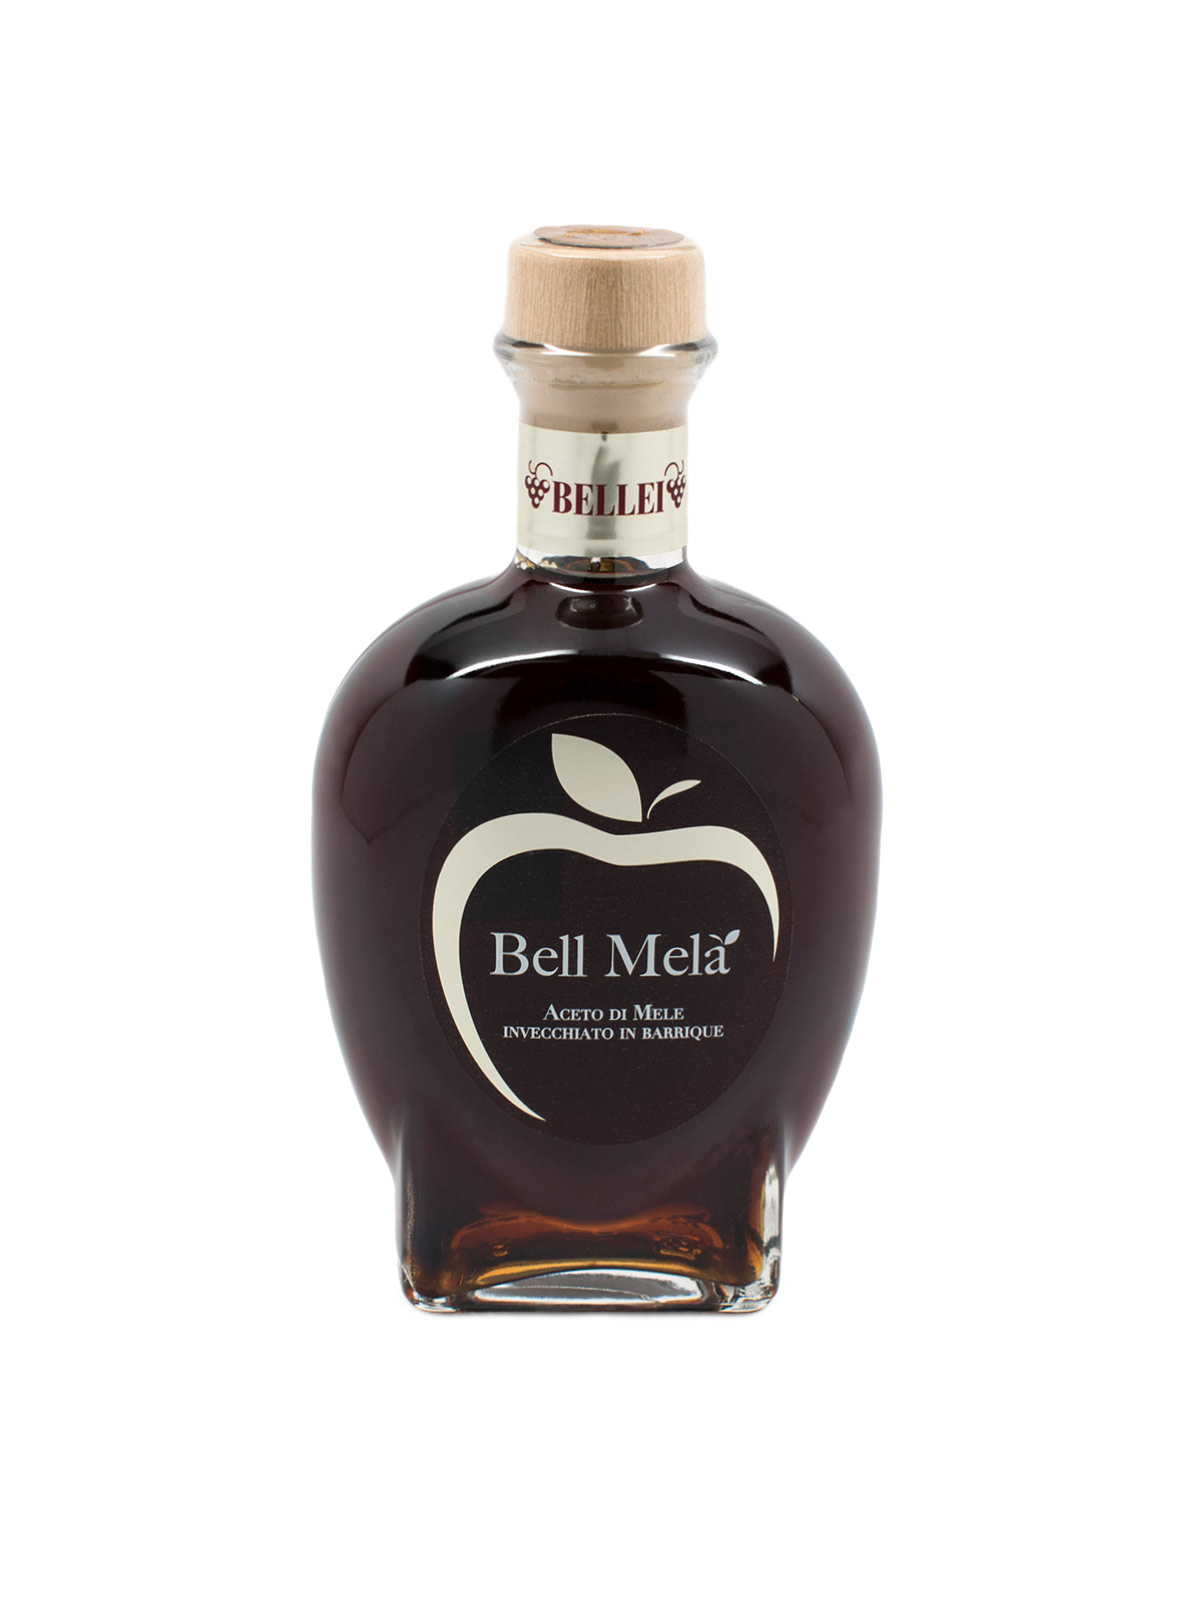 Bellei Apple Cider Vinegar - Oils & Vinegars - Buon'Italia